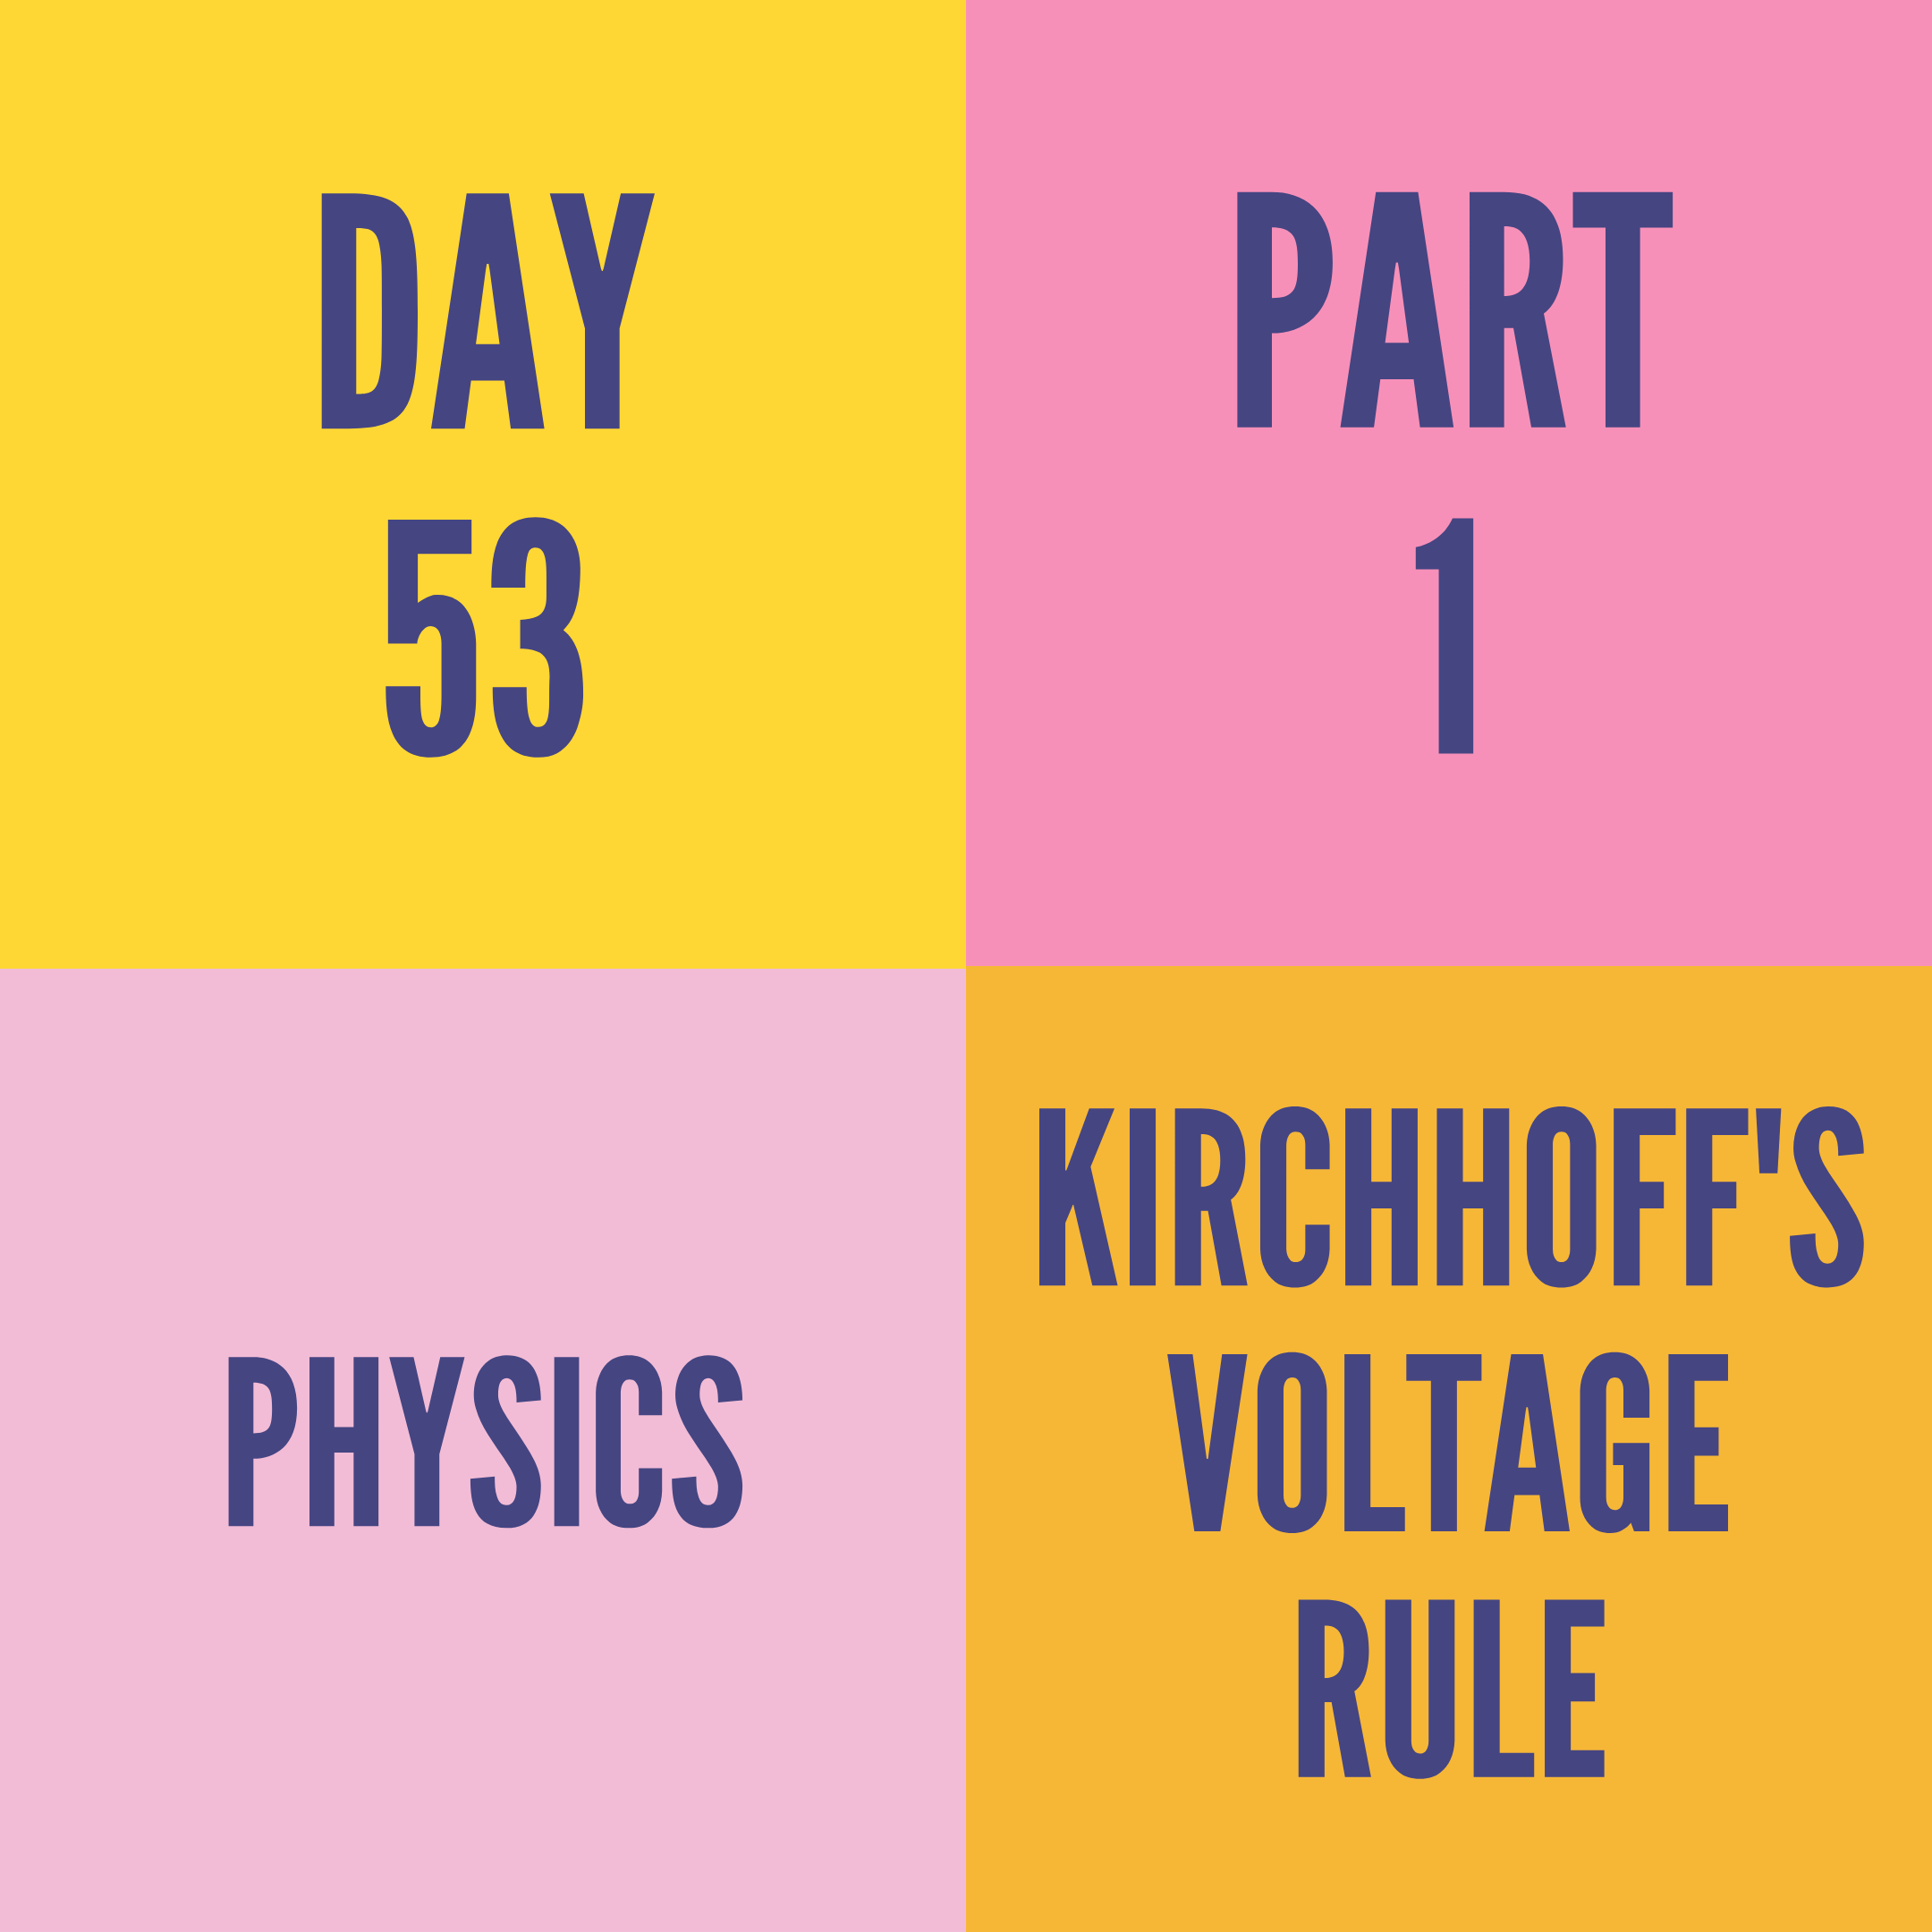 DAY-53 PART-1  KIRCHHOFF'S VOLTAGE RULE